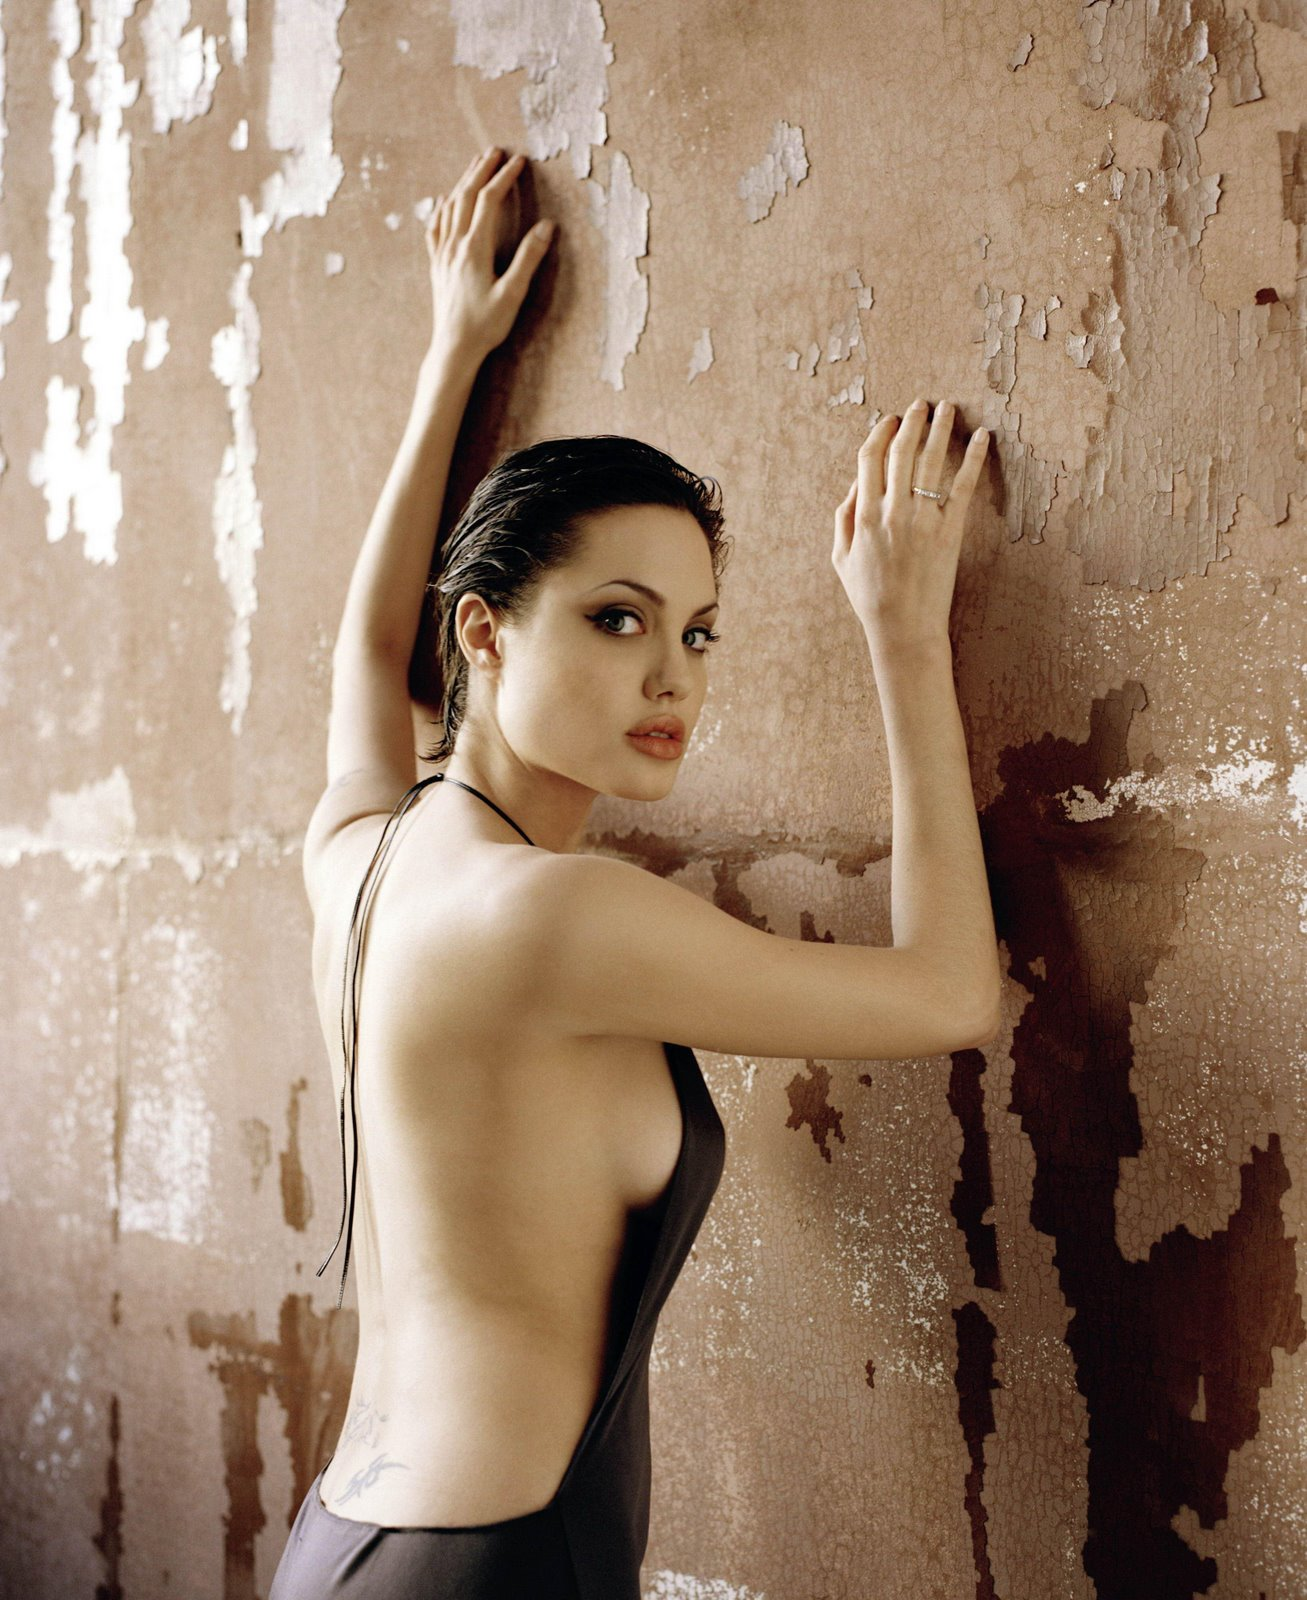 angelina jolie topless